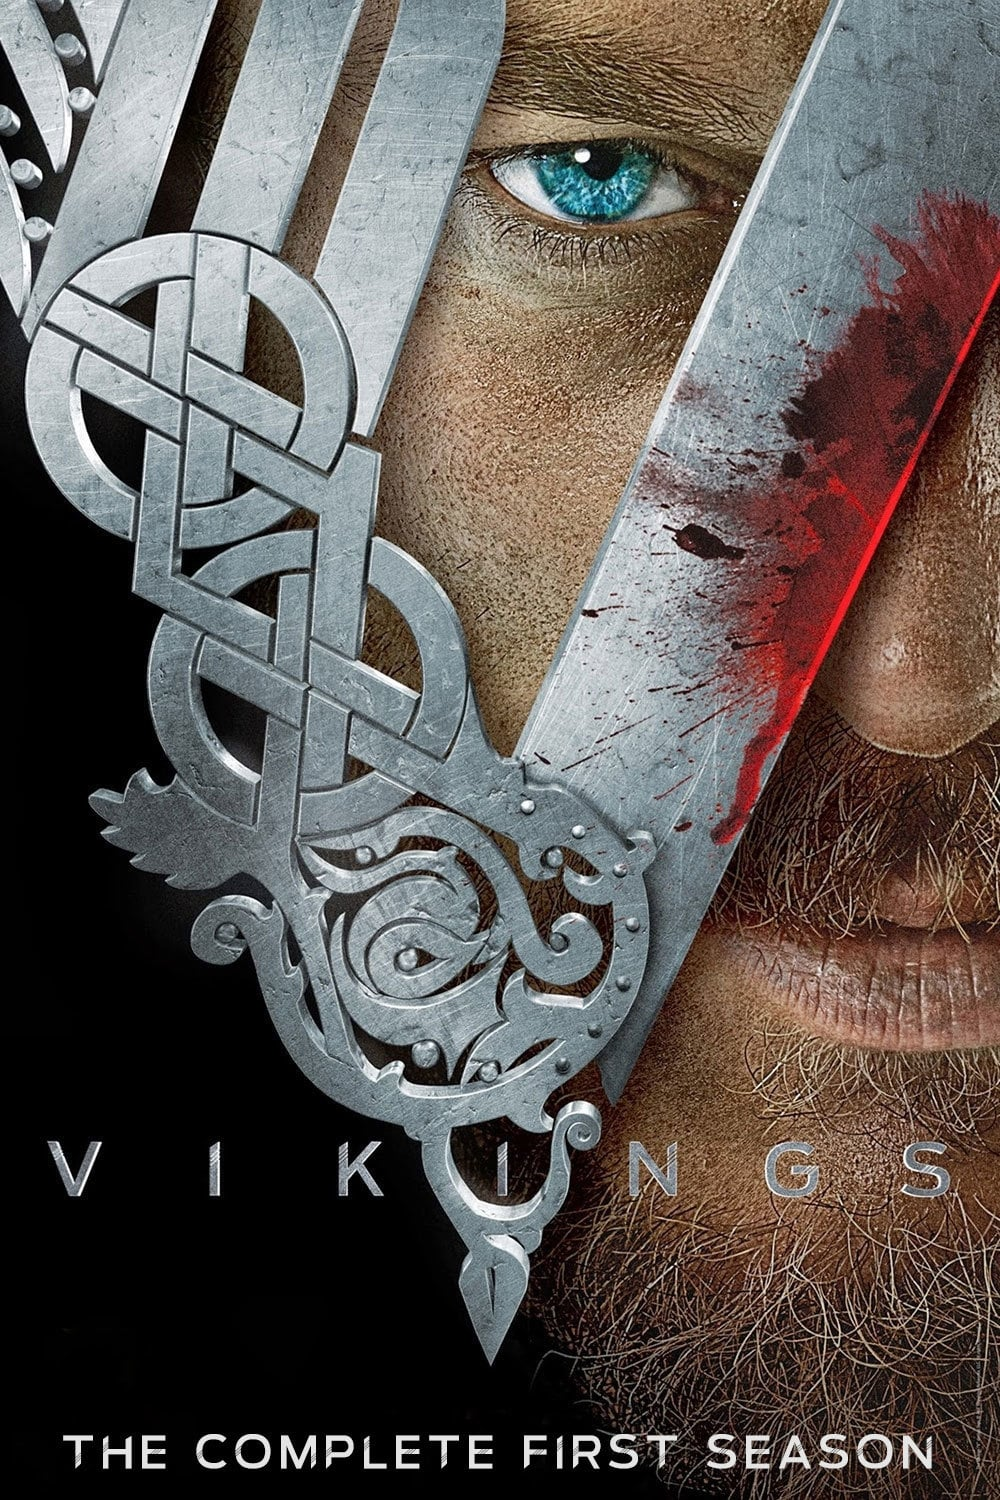 http://www.thepiratefilmeshd.com/vikings-1a-temporada-2013-bdrip-bluray-720p-dublado-torrent/